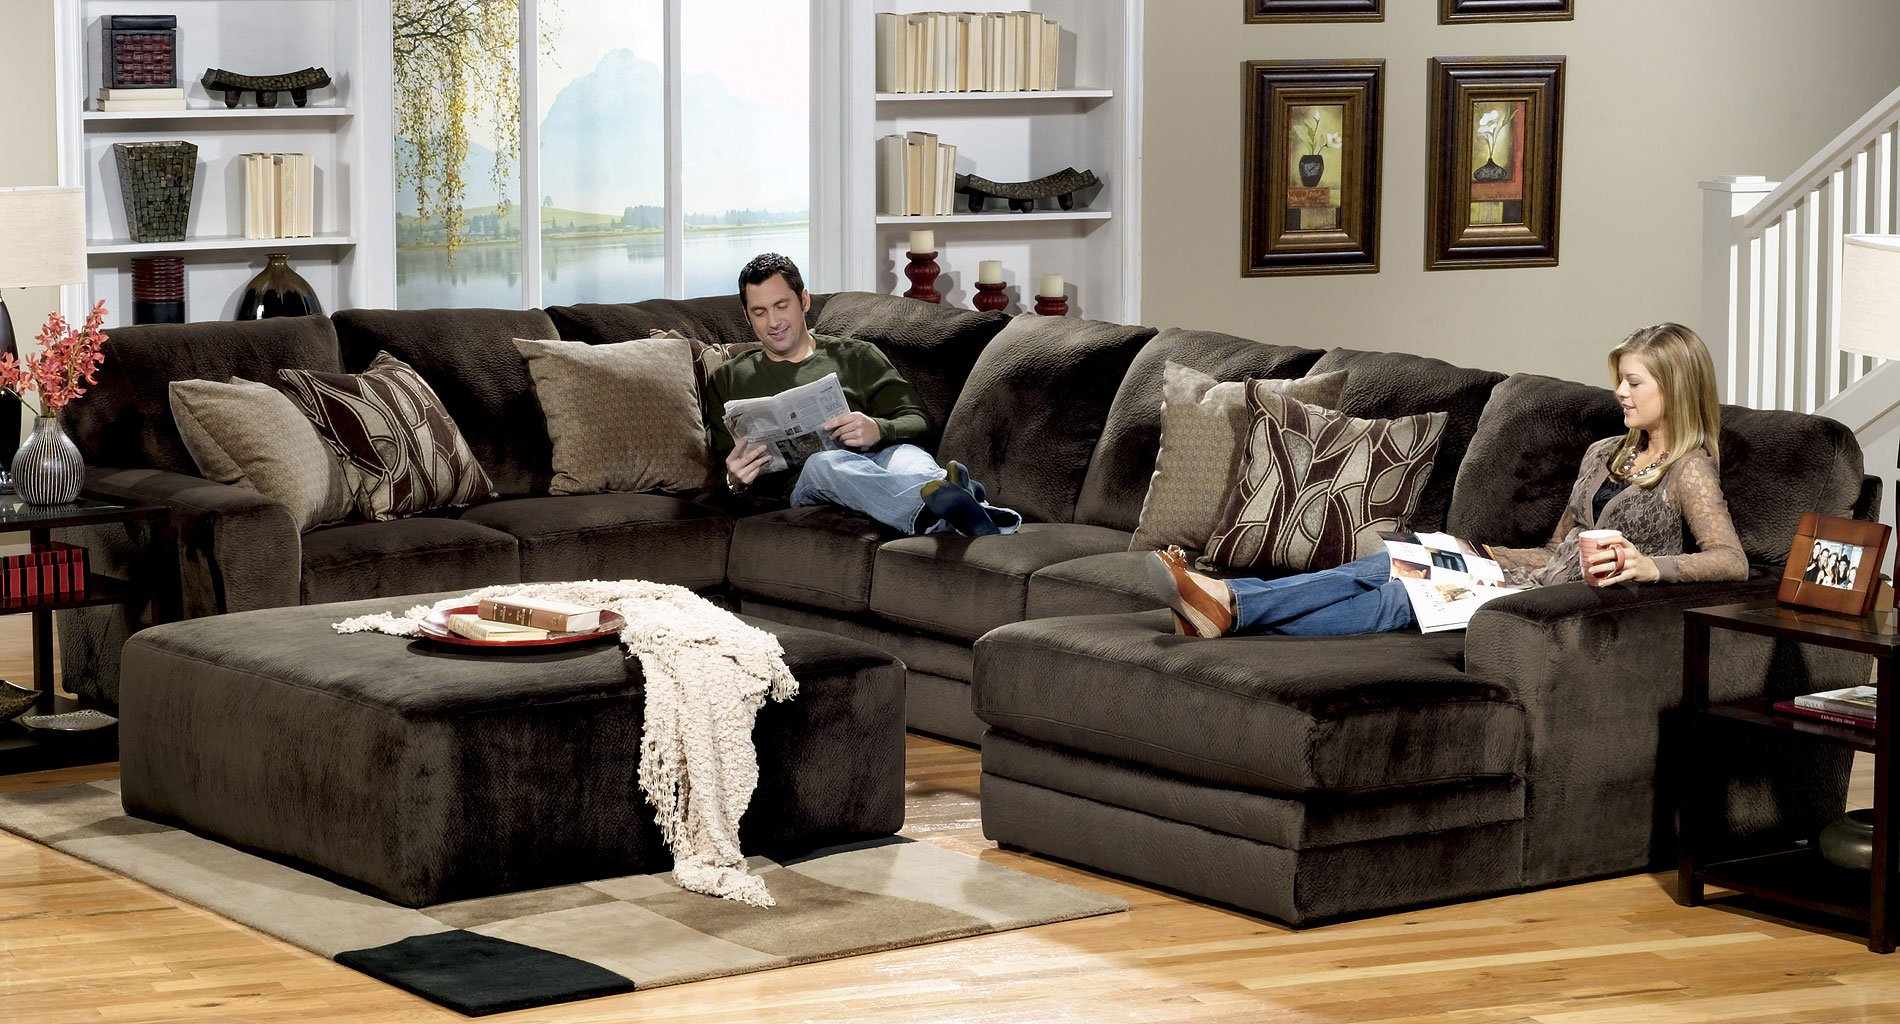 Everest Modular Sectional Set (Chocolate)